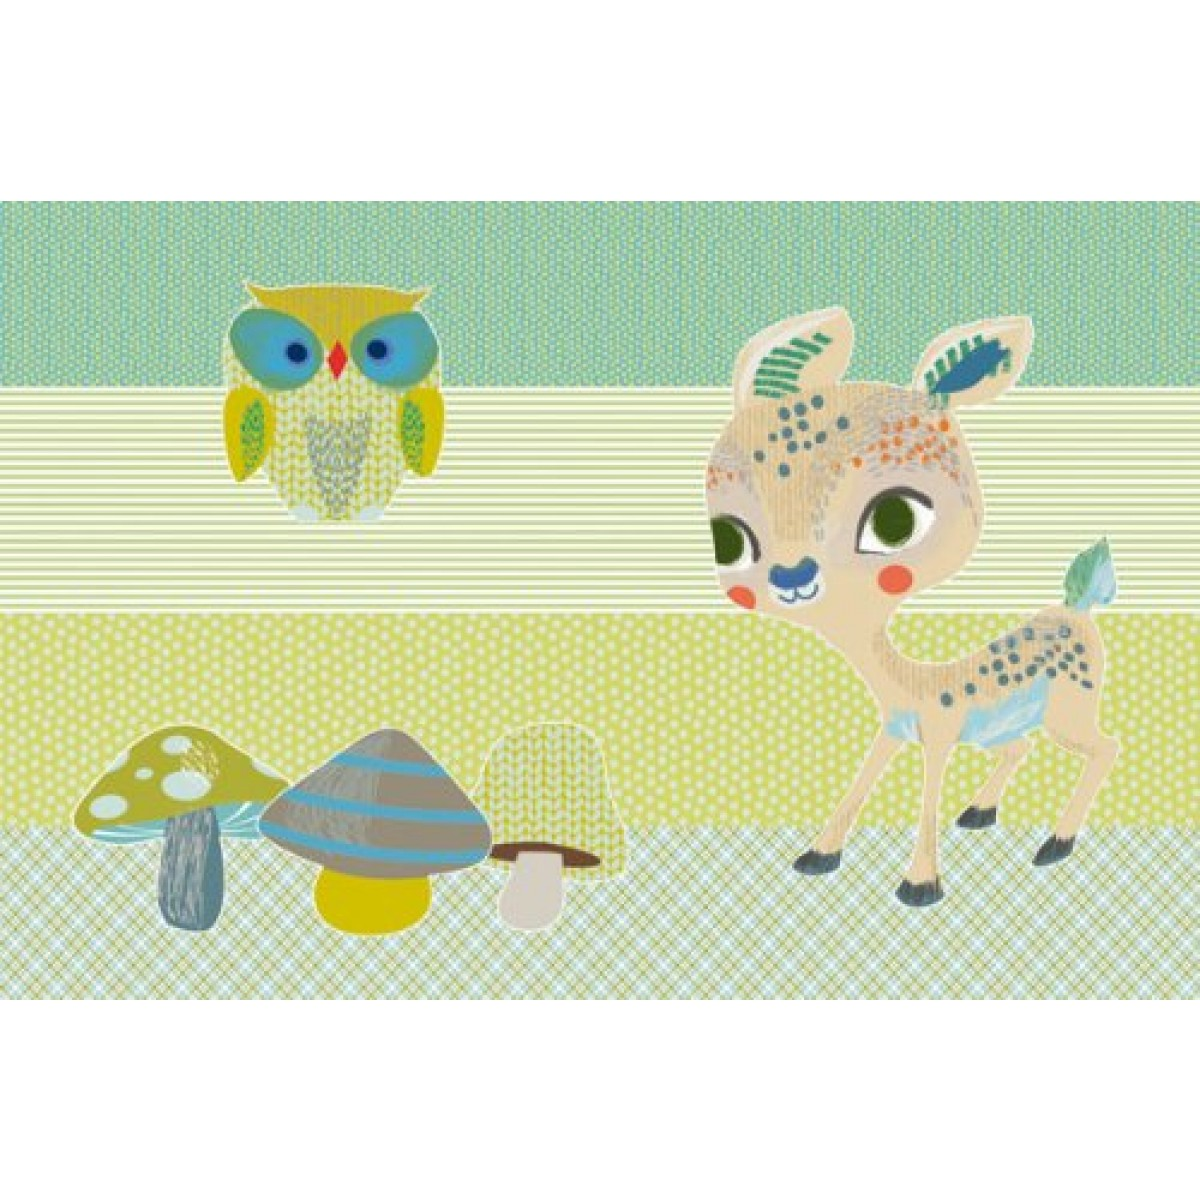 Djeco Woods Wall Mobile Card and Envelope